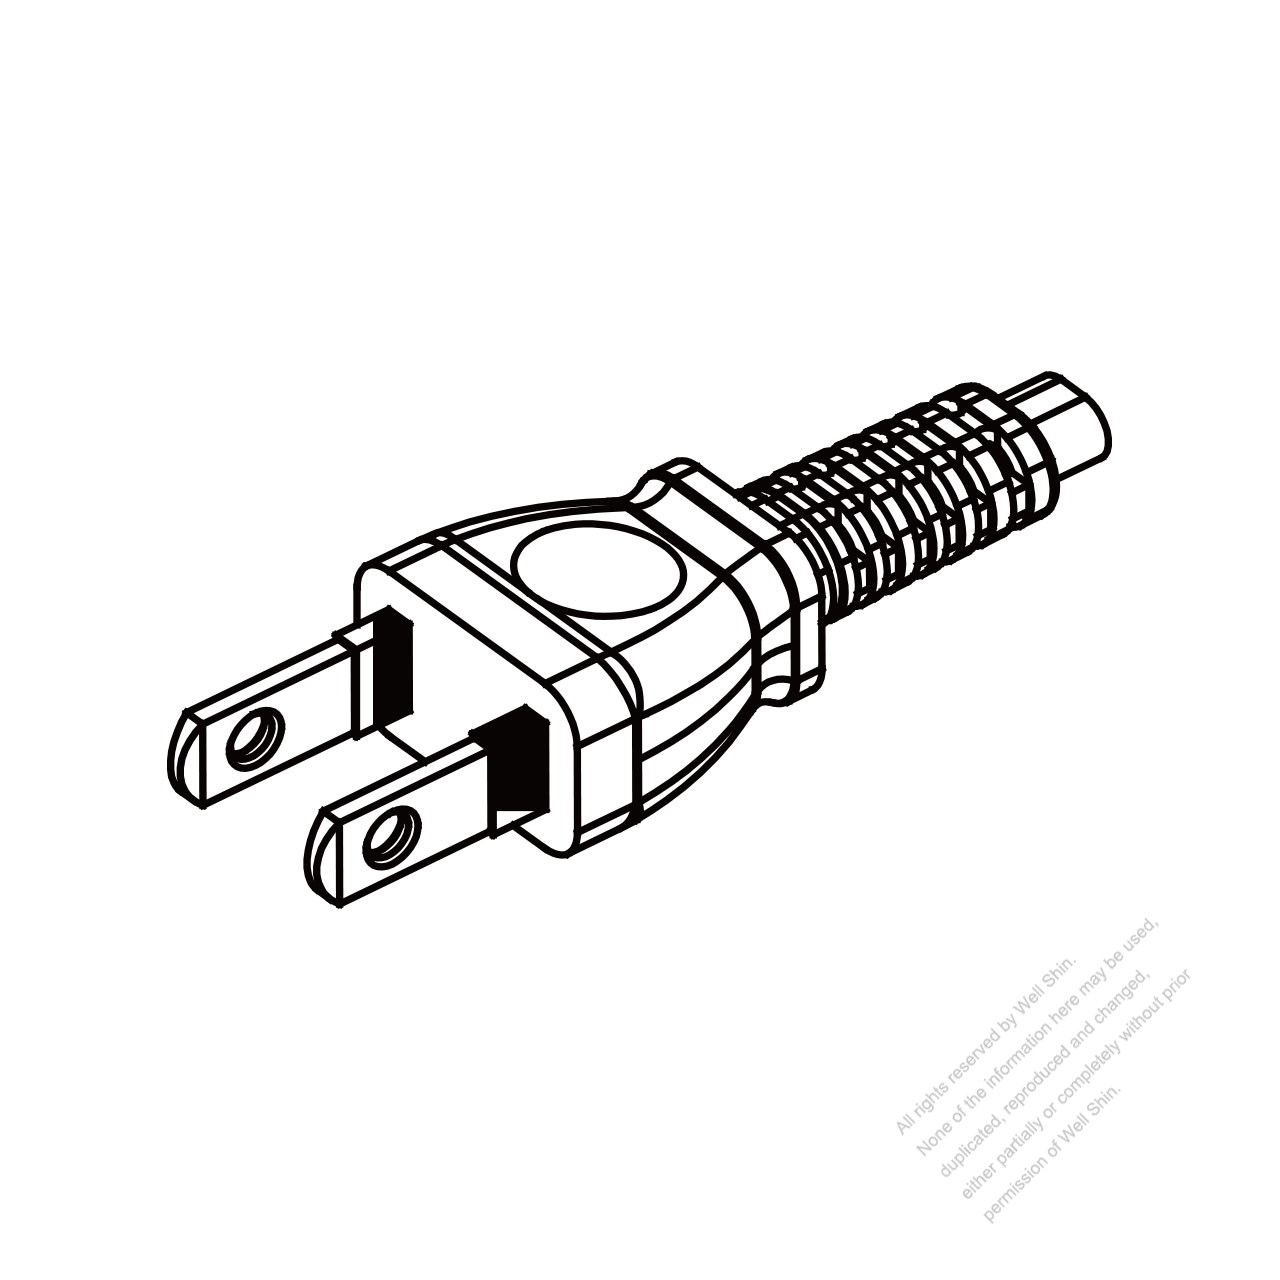 Japan 2 Pin Semi Insulation Plug Cable End Cut Ac Power